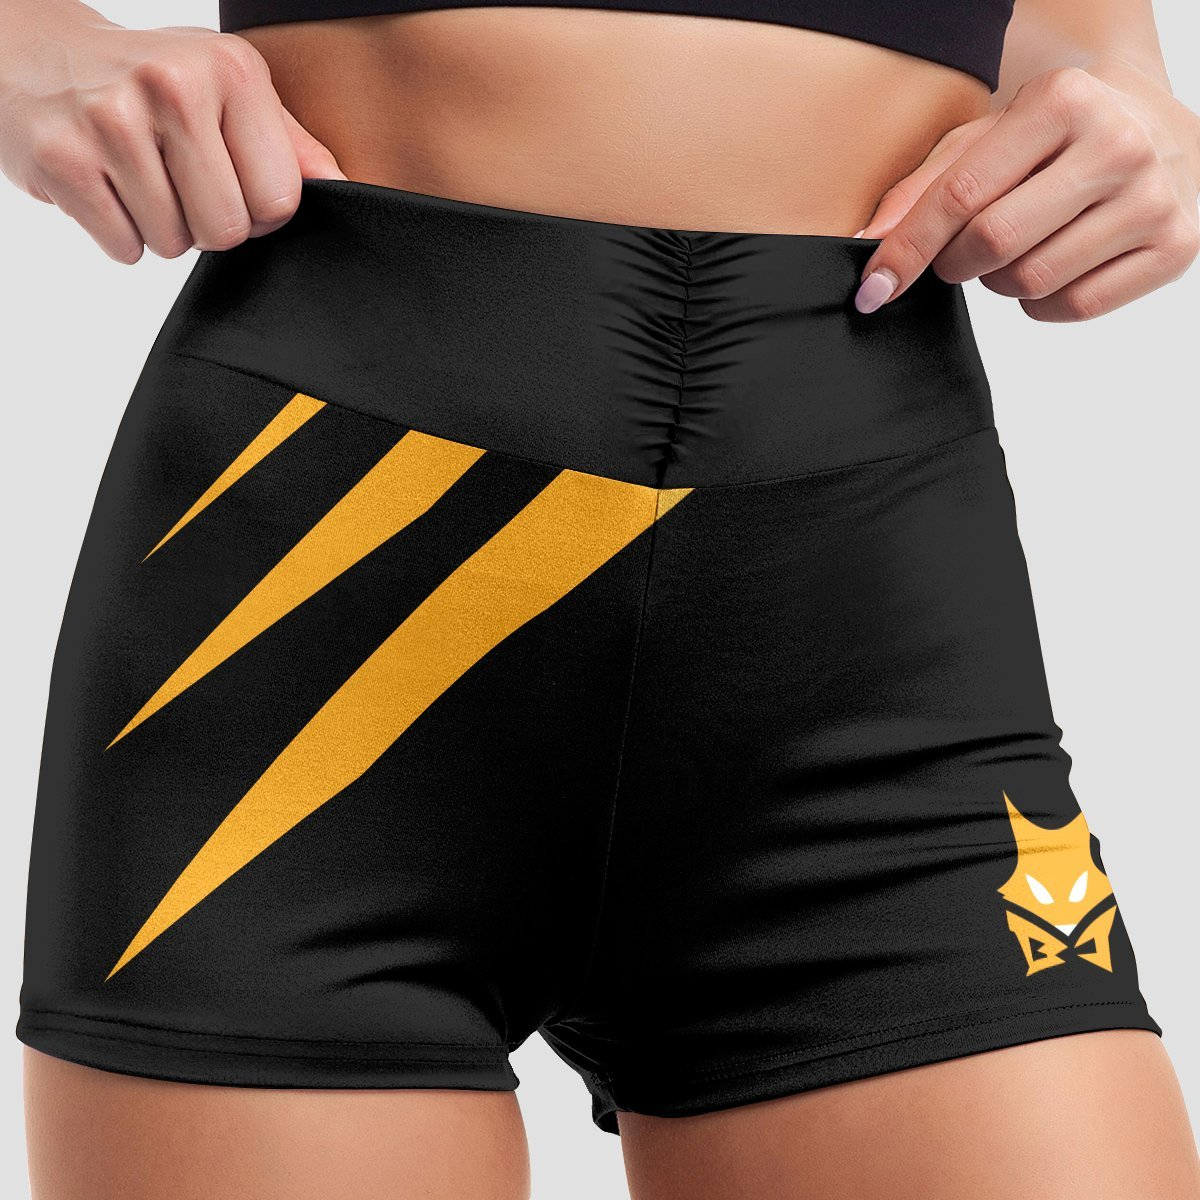 team msby black jackals active wear set 404381 - Anime Swimsuits